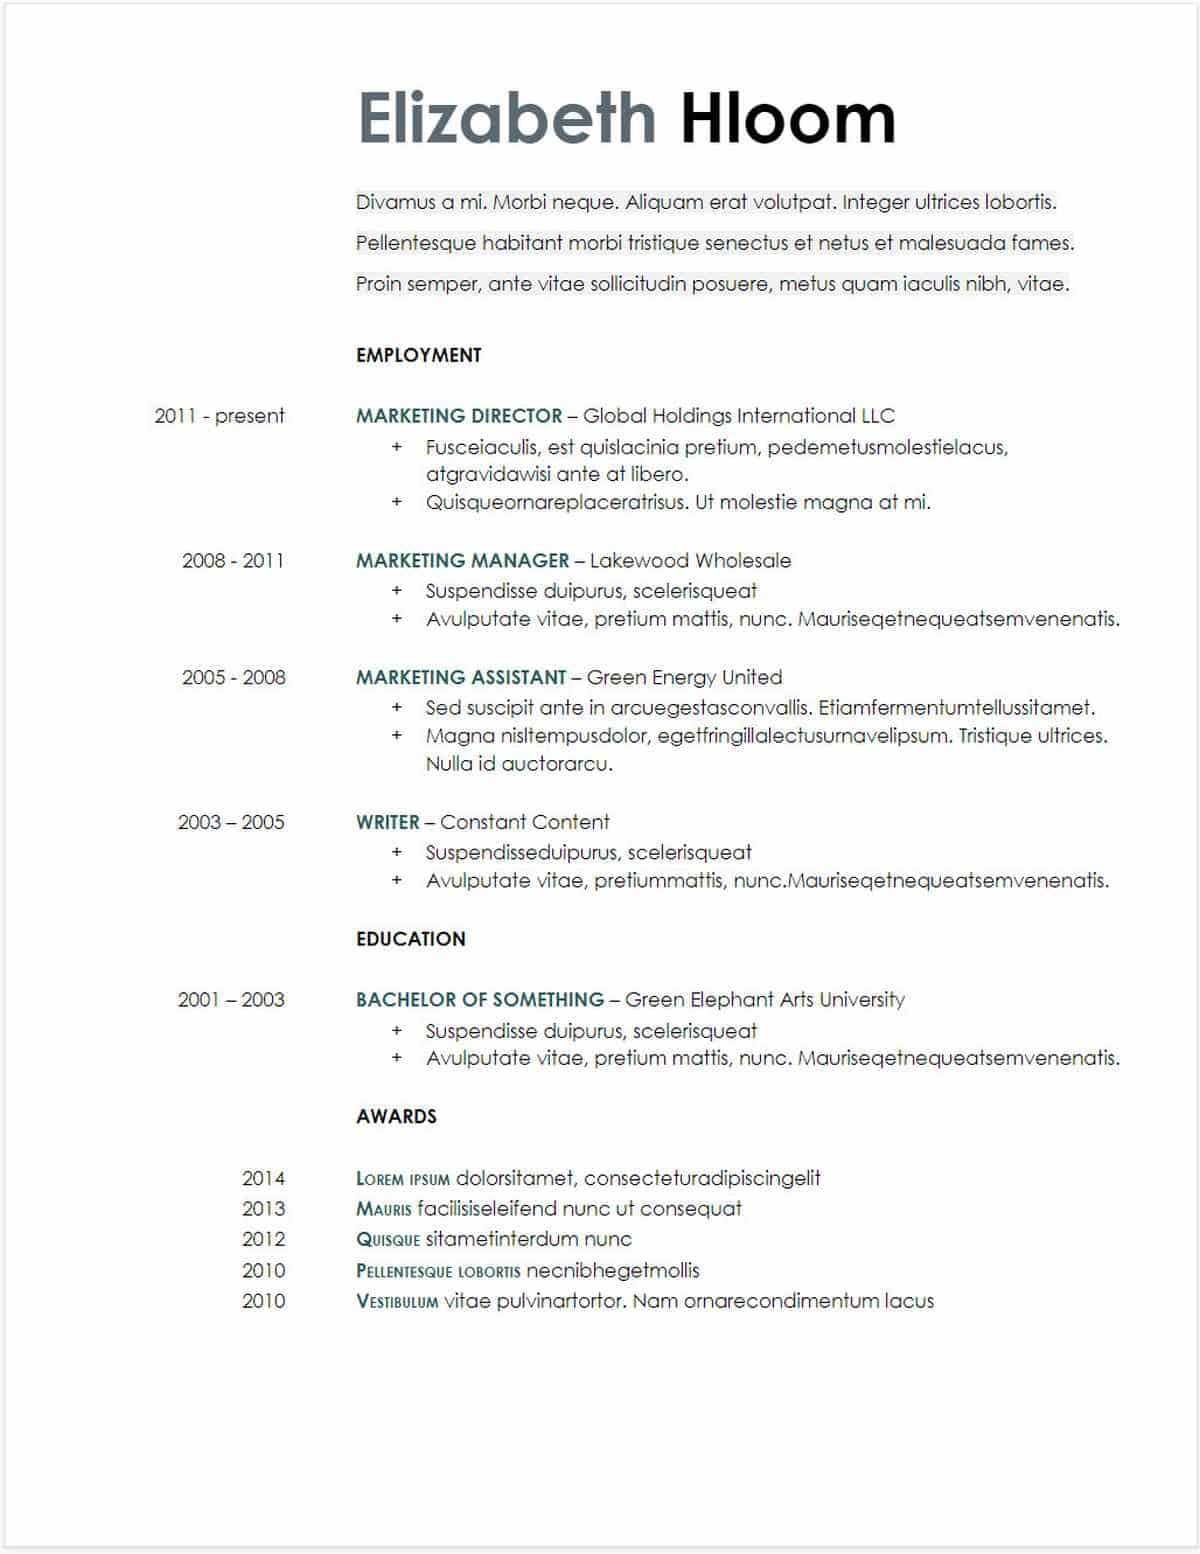 resume template education section in 2020 Downloadable